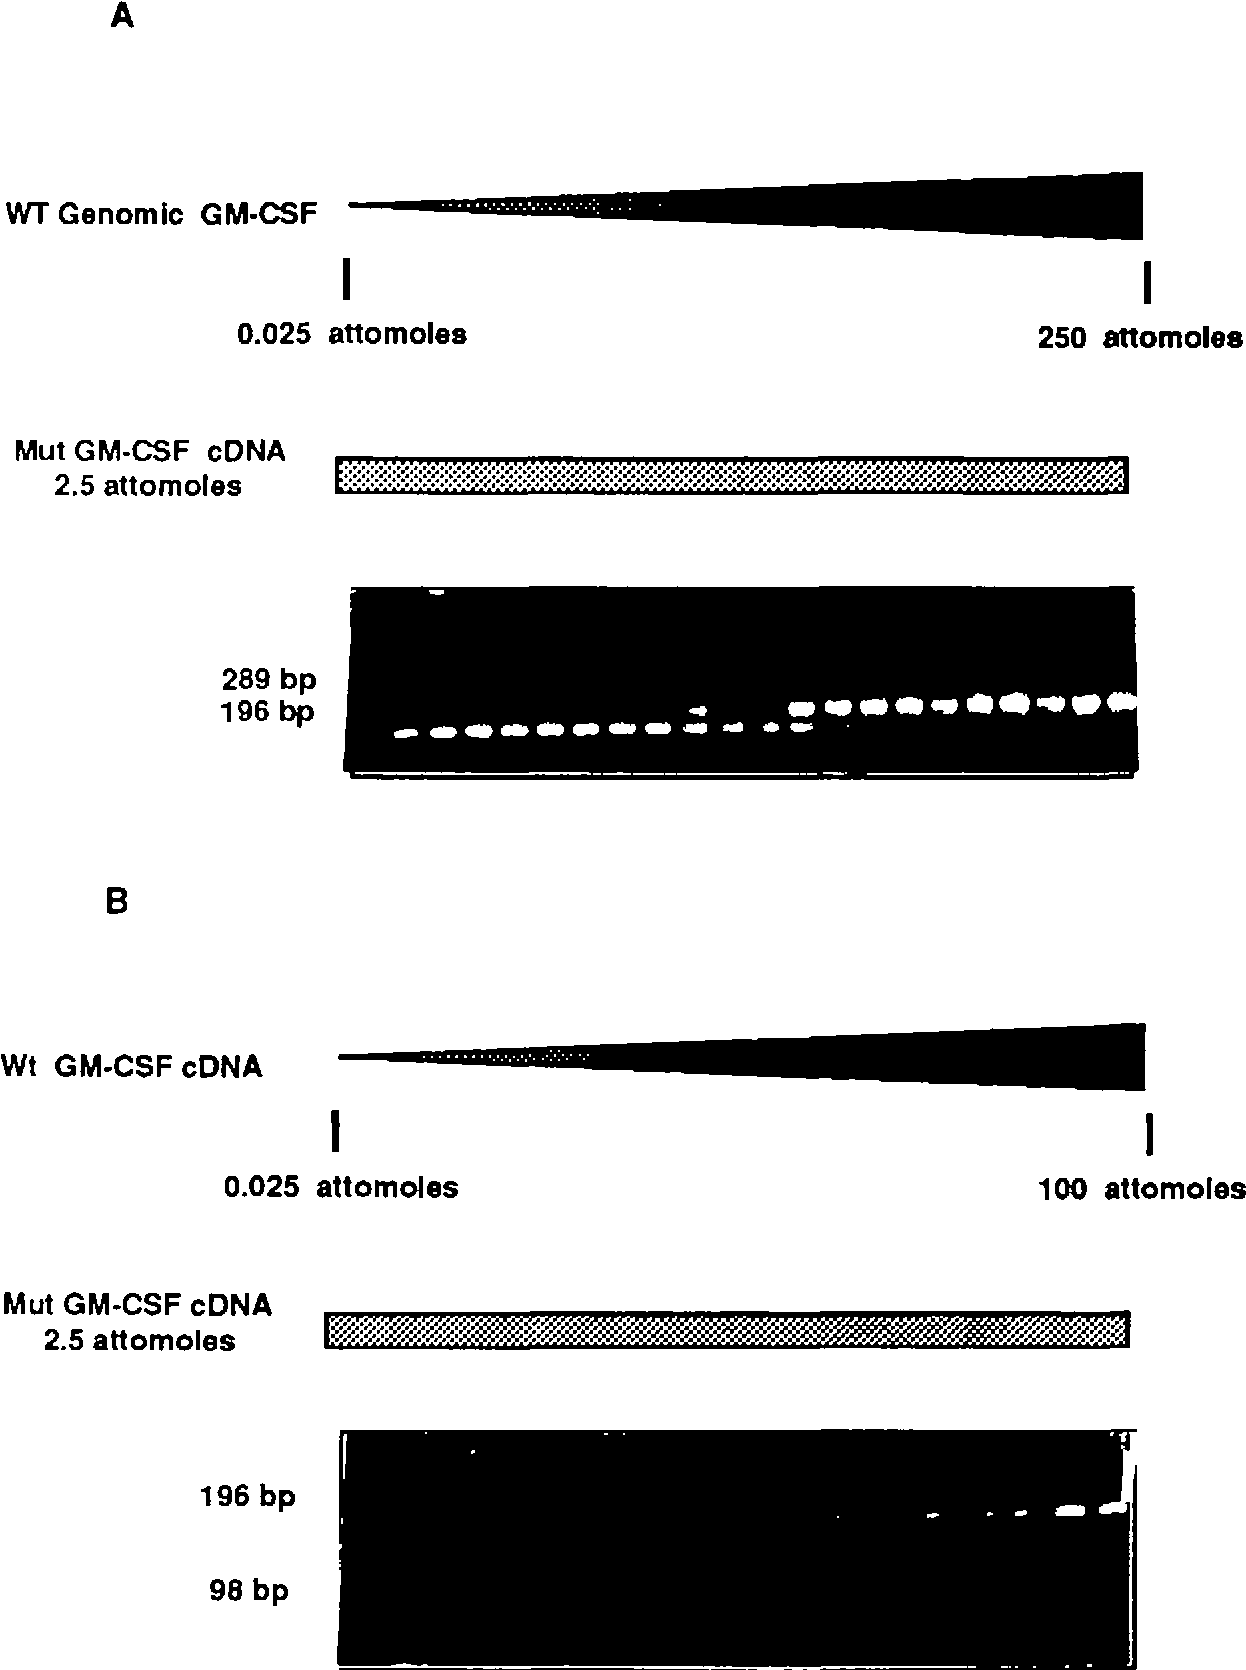 Figure 6. Use of mutant GM-CSF template in competitive PCR. A fixed concentration of mutant GM-CSF (2.5 attomoles/tube) was added to a master mix which contained dNTP (200 ^M in each, including [a-^PldCTP at 50 jiCi/ml), GM-CSF primers 1 and 2 (20 pmoles/tube), 1 XPCR buffer, Taq polymerase (0.1 /d/tiibe). The master mix containing the mutant GM-CSF cDNA was aliquoted into separate tubes containing (A) genomic GM-CSF DNA ranging in concentration from 0.025 to 250/tube or (B) wikftype GM-CSF cDNA ranging in concentration from 0.025 to 100 attomoles/tube. Samples were amplified for 40 cycles of PCR as described above, and electrophoresed on 2% Nusievc/1% agarose gels. Input mutant GM-CSF cDNA is calculated as described (4). Briefly, the ratio of mutant GM-CSF cDNA/genomk GM-CSF is determined for each tube by excising and counting the appropriate bands, and plotted as a function of input genomic GM-CSF in the titration series. Where the ratio is 1.0, input genomic GM-CSF from the titration series is equivalent to the amount of input mutant GM-CSF cDNA.